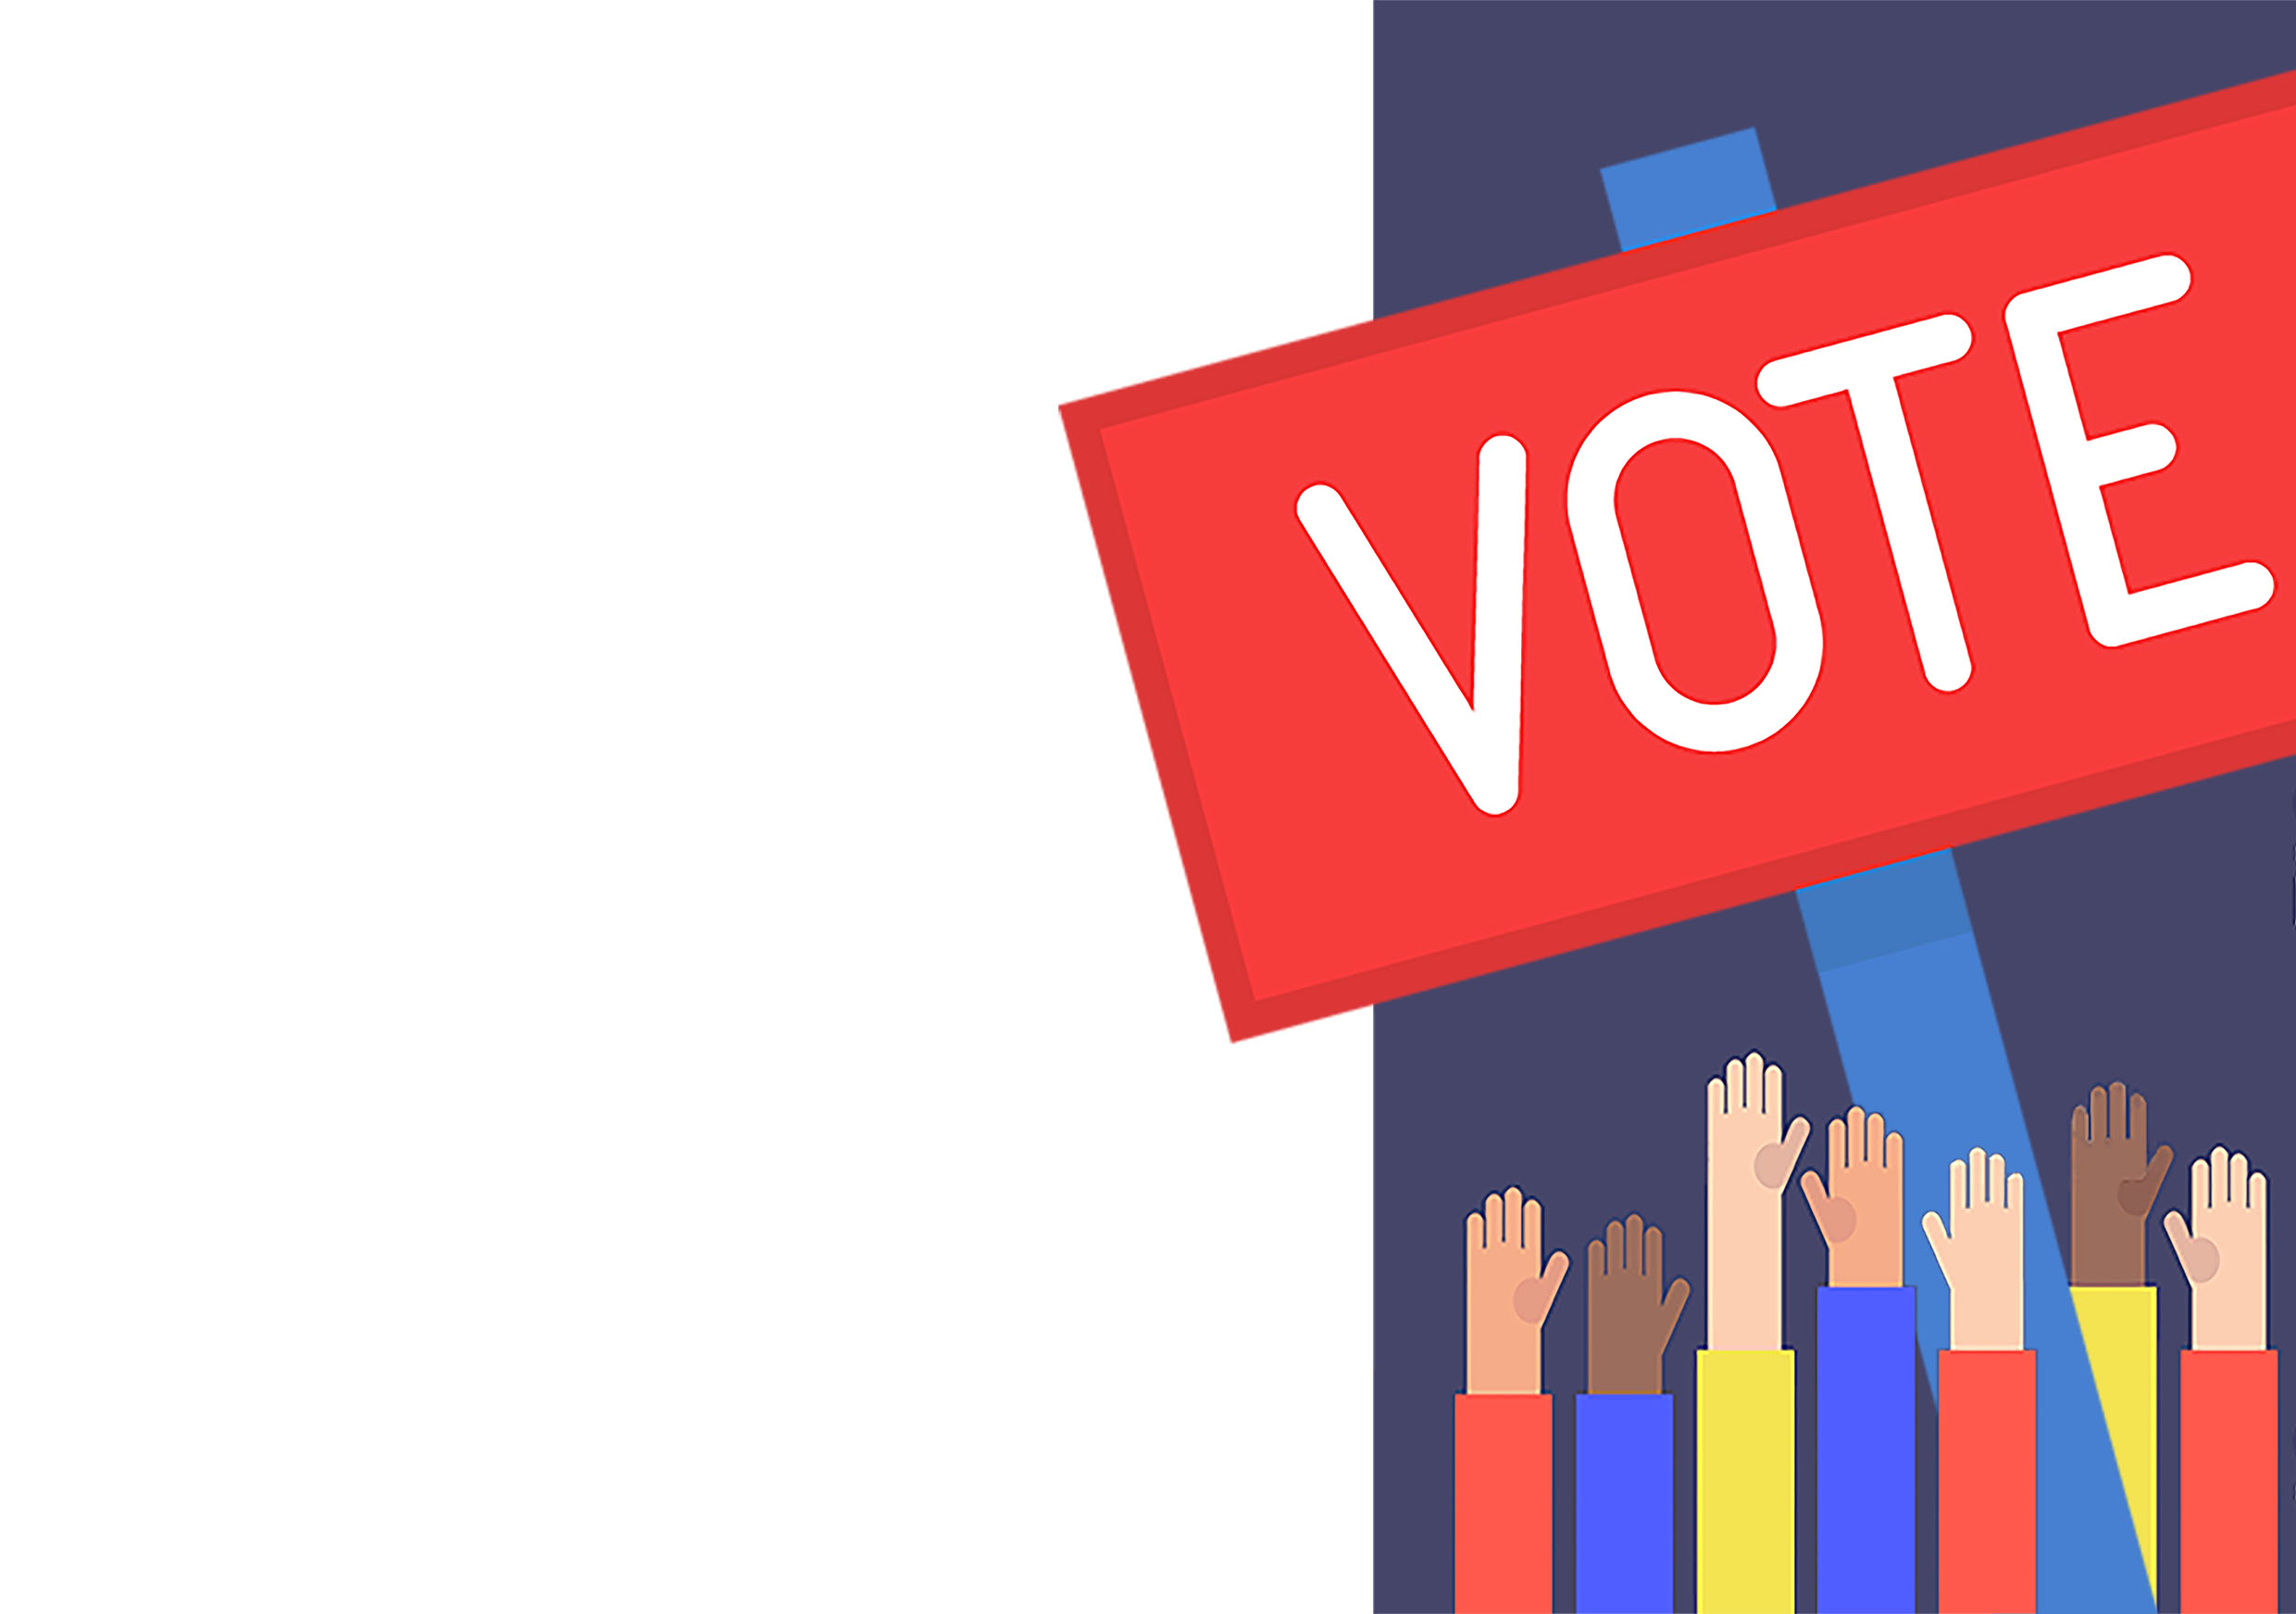 Vote for the next project psa project - Voting closes on 28th of February with results posted the 1st of March.This is a direct opportunity to influence how money raised throughout the year through numerous events is spent.Best of Luck!